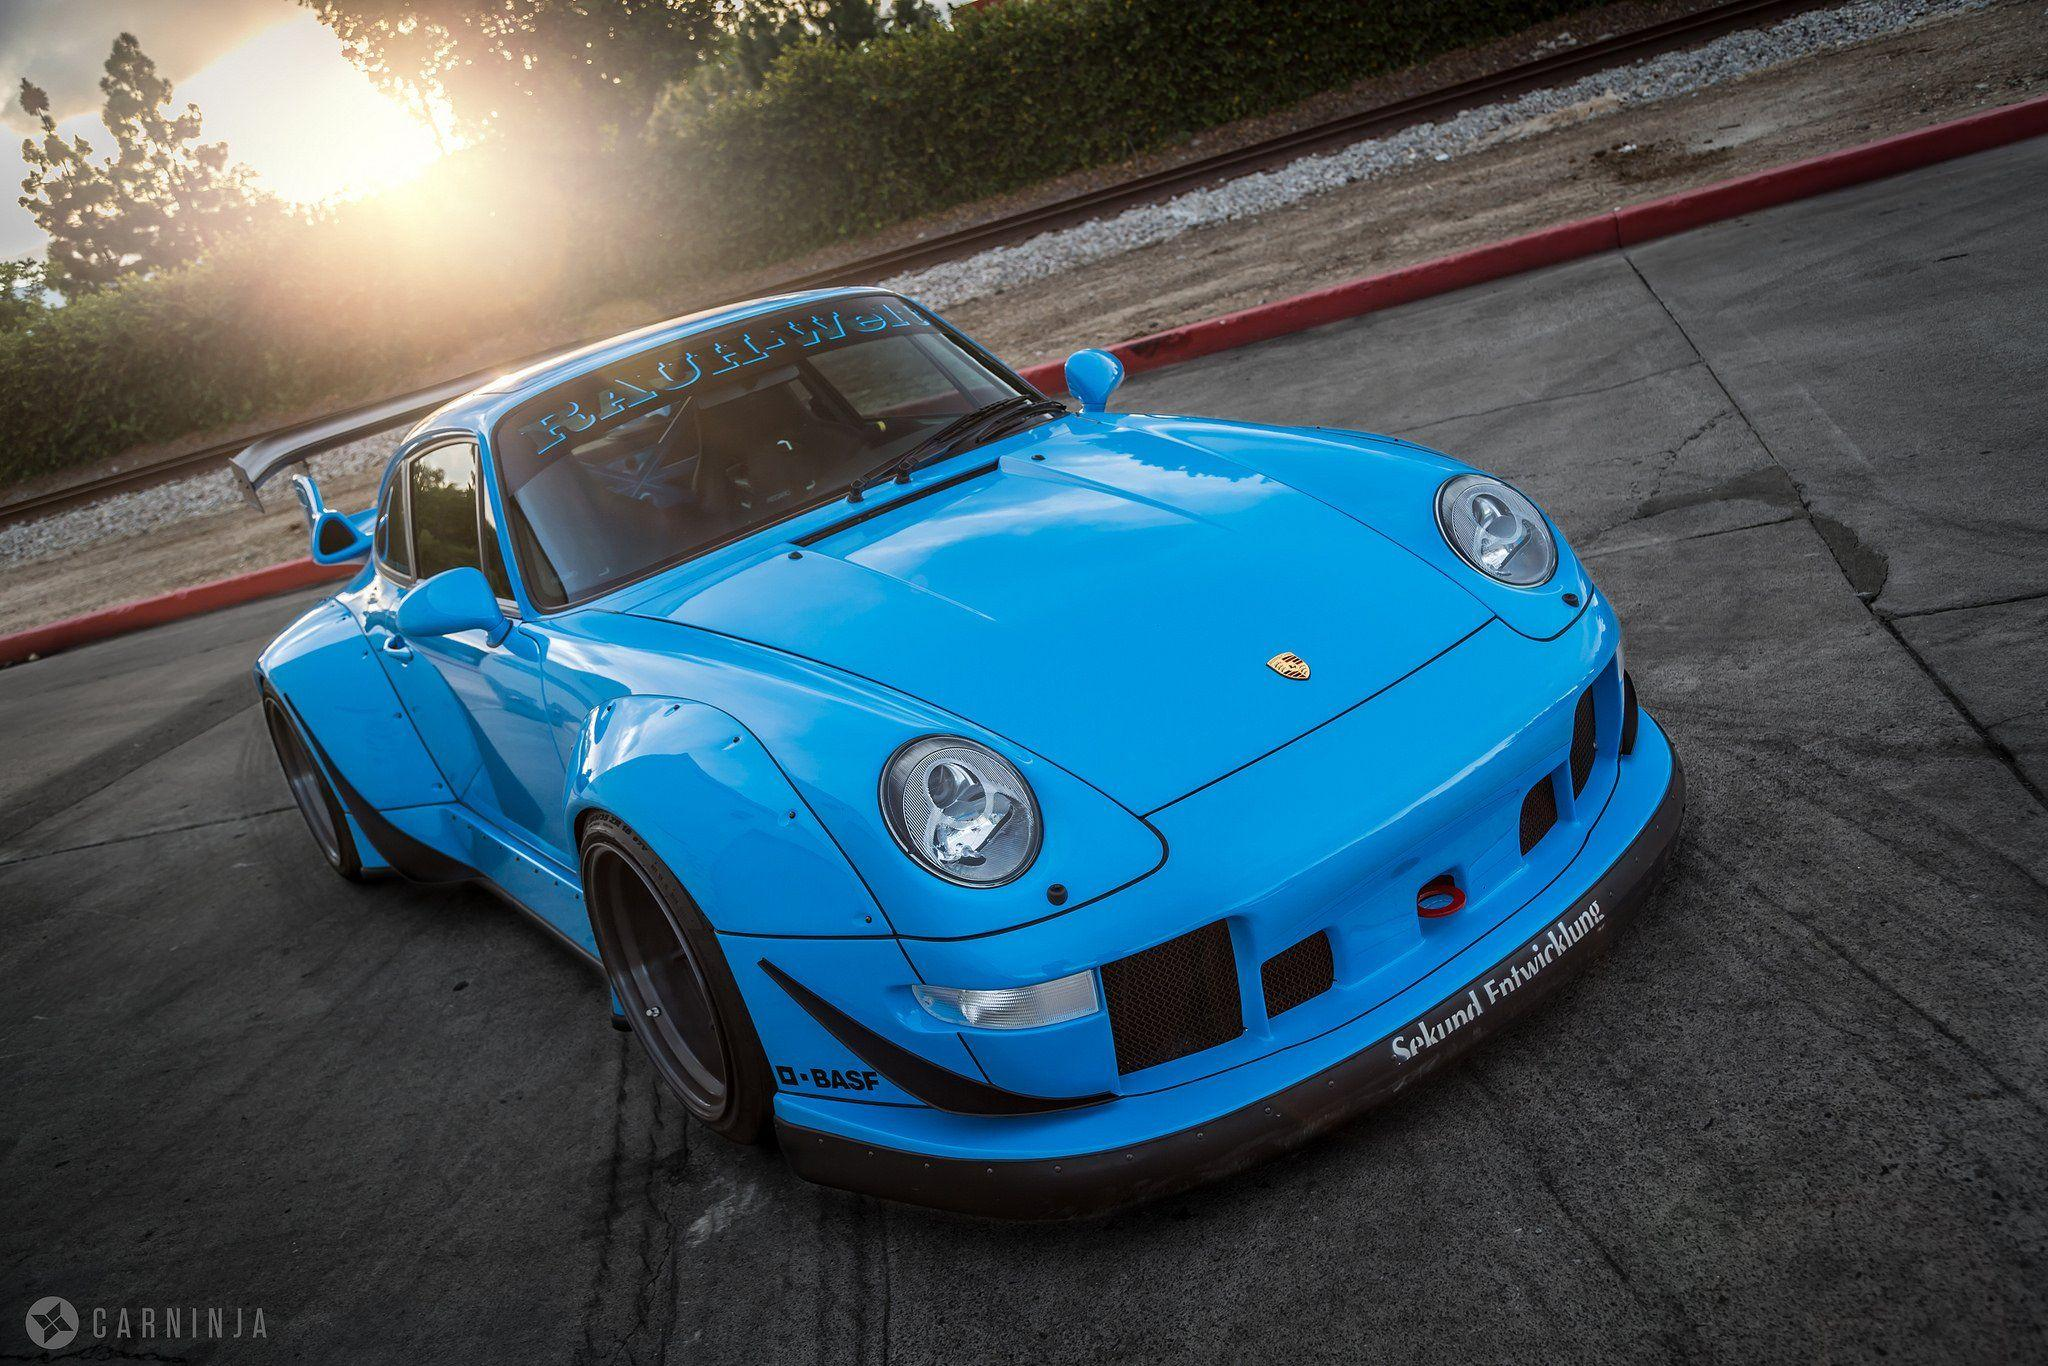 RWB Porsche 993 coupe cars body kit tuning wallpapers